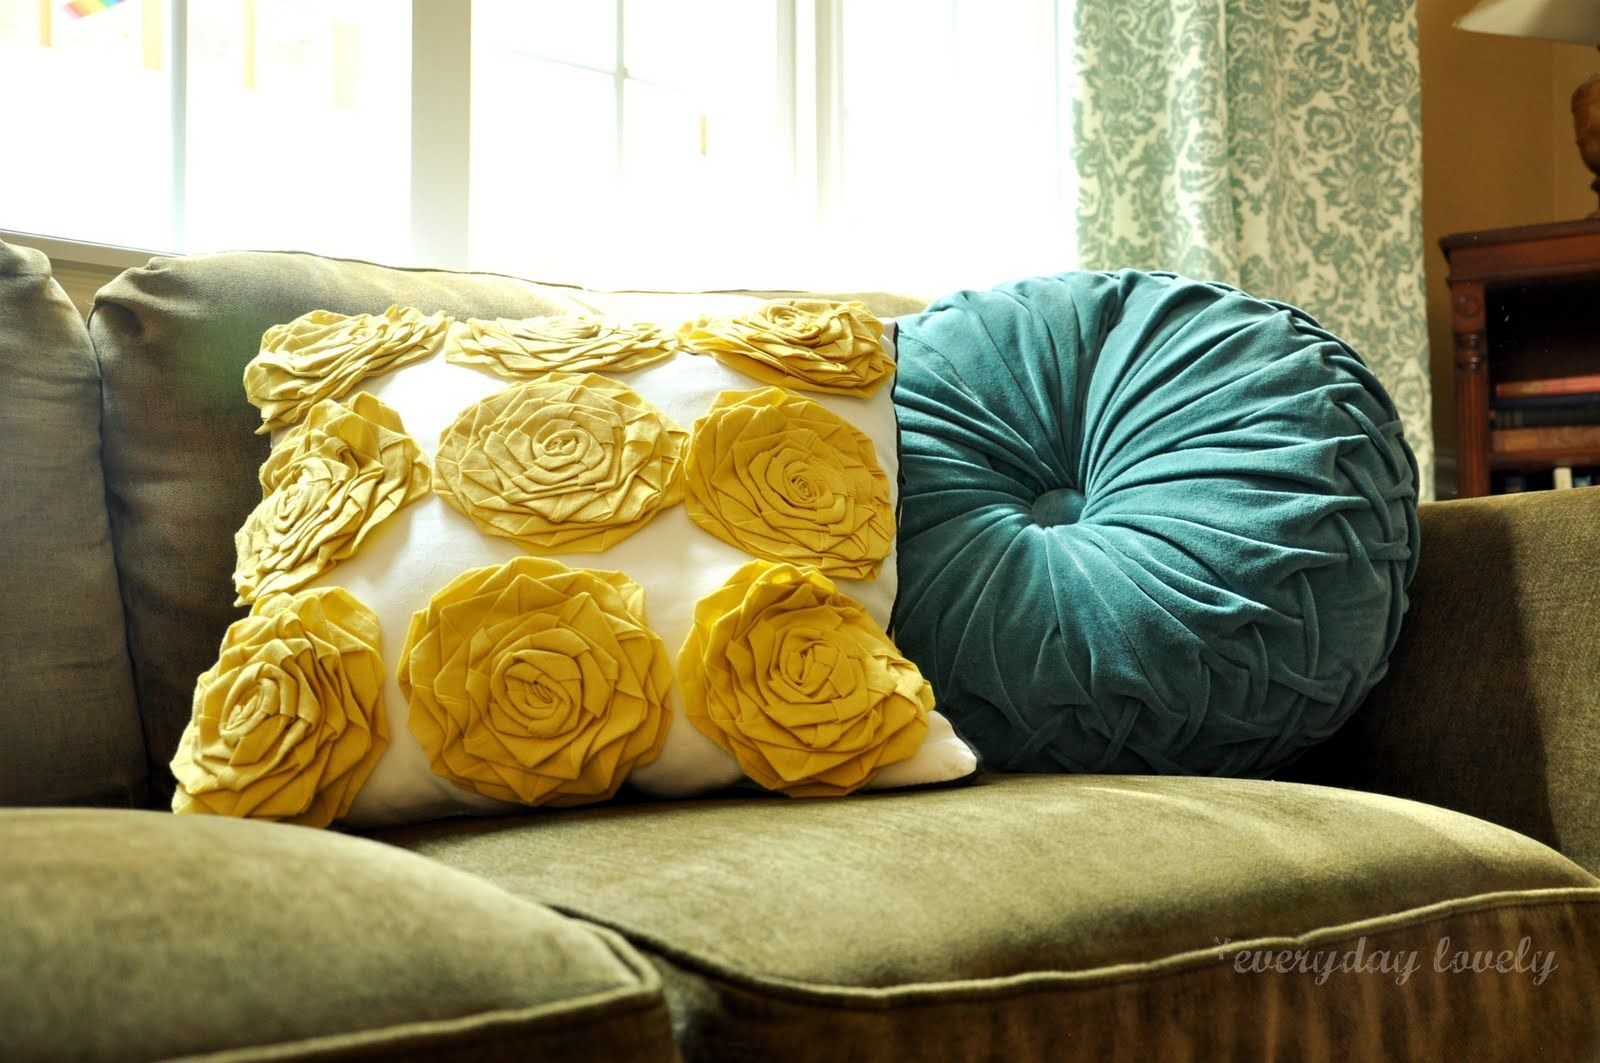 the blue pillow accent would be a nice change with my olive green couch and